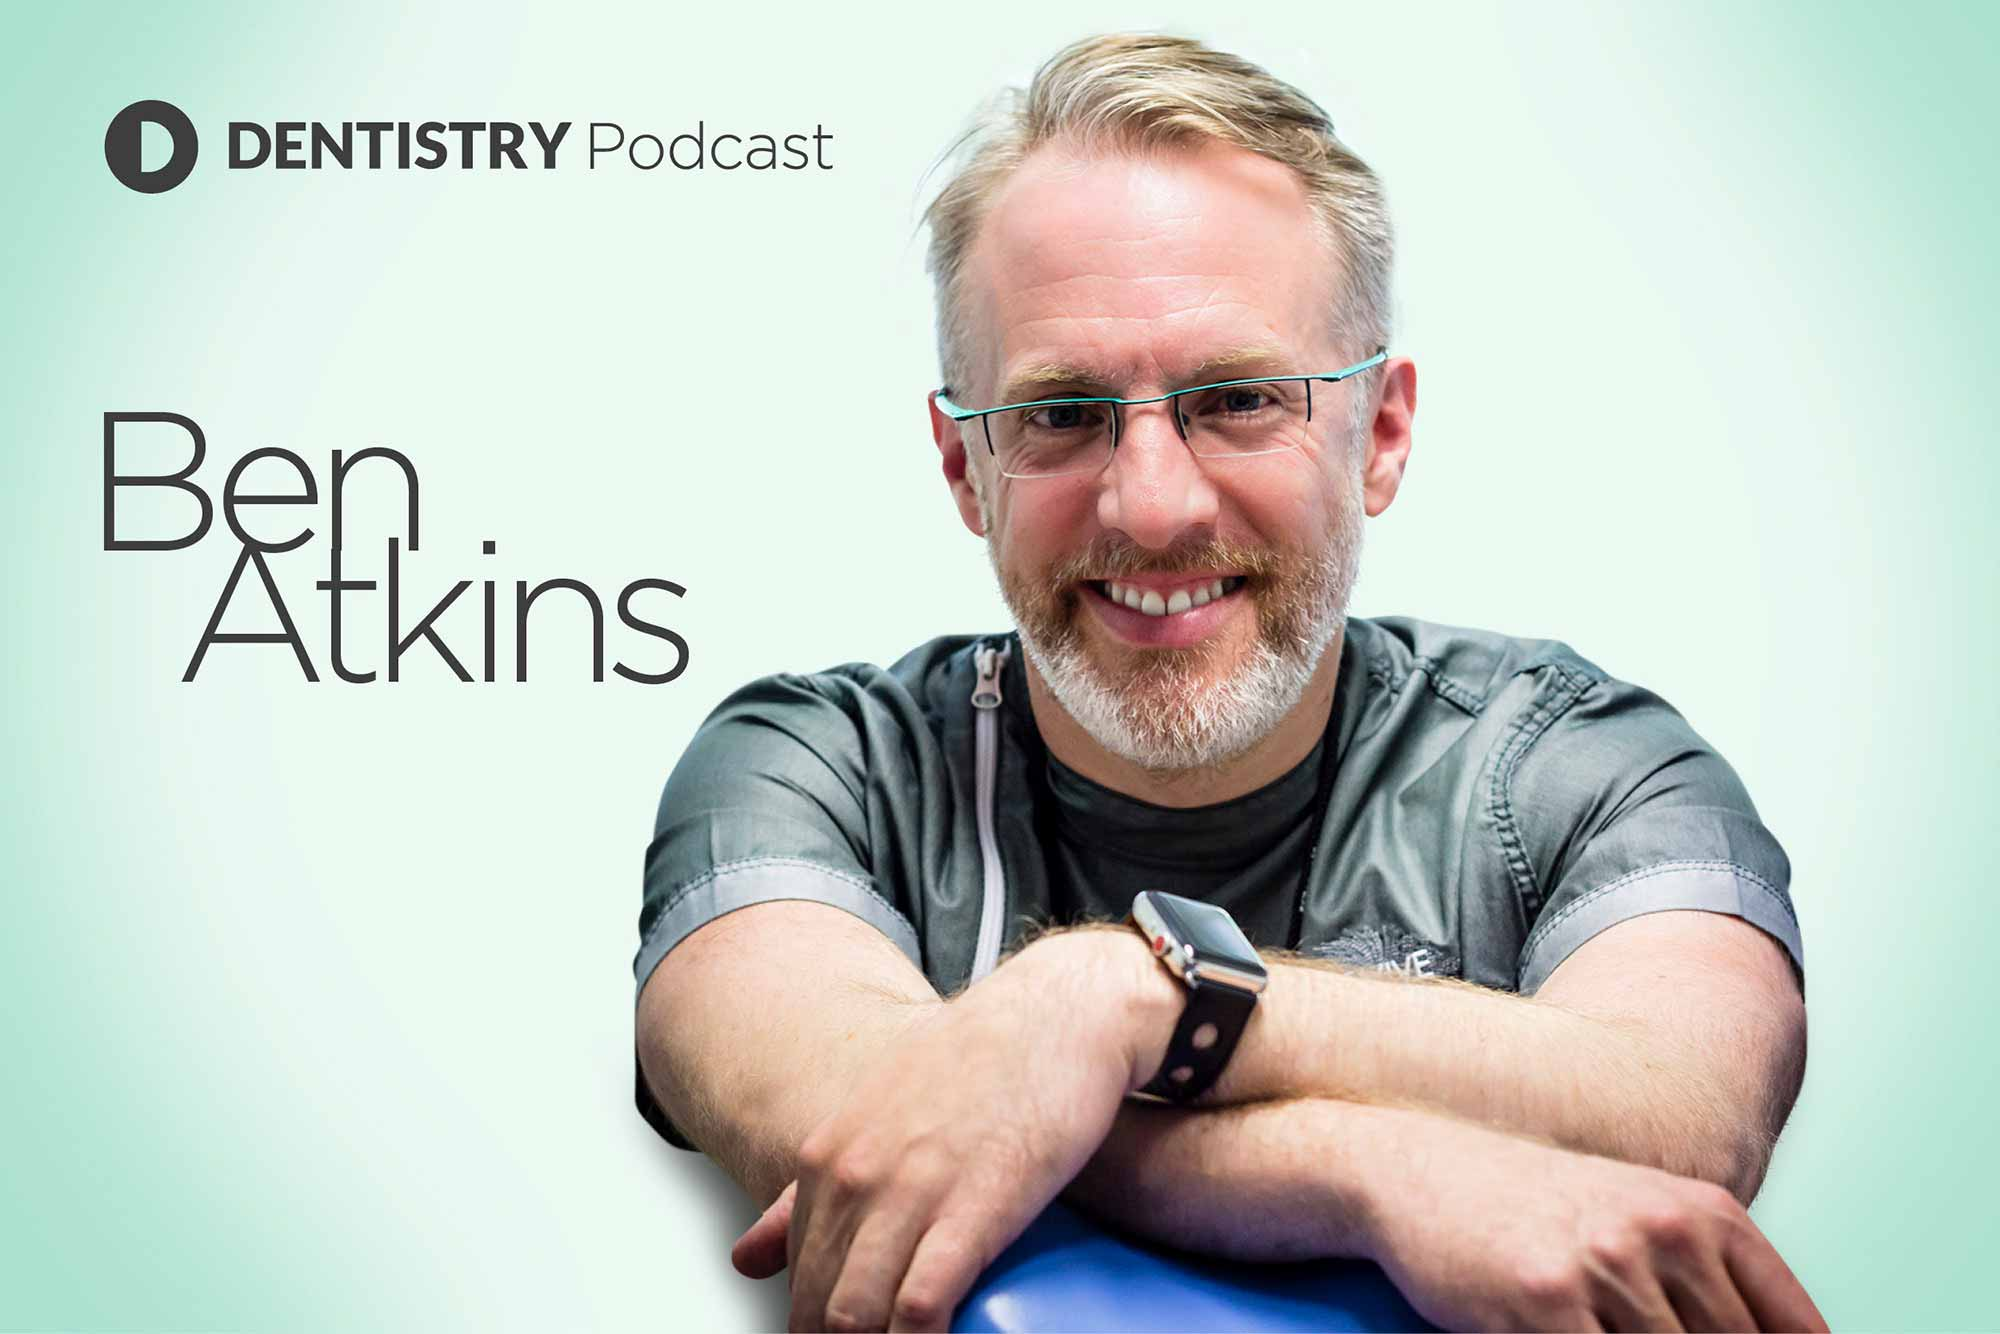 Dentistry Online podcast with Ben Atkins